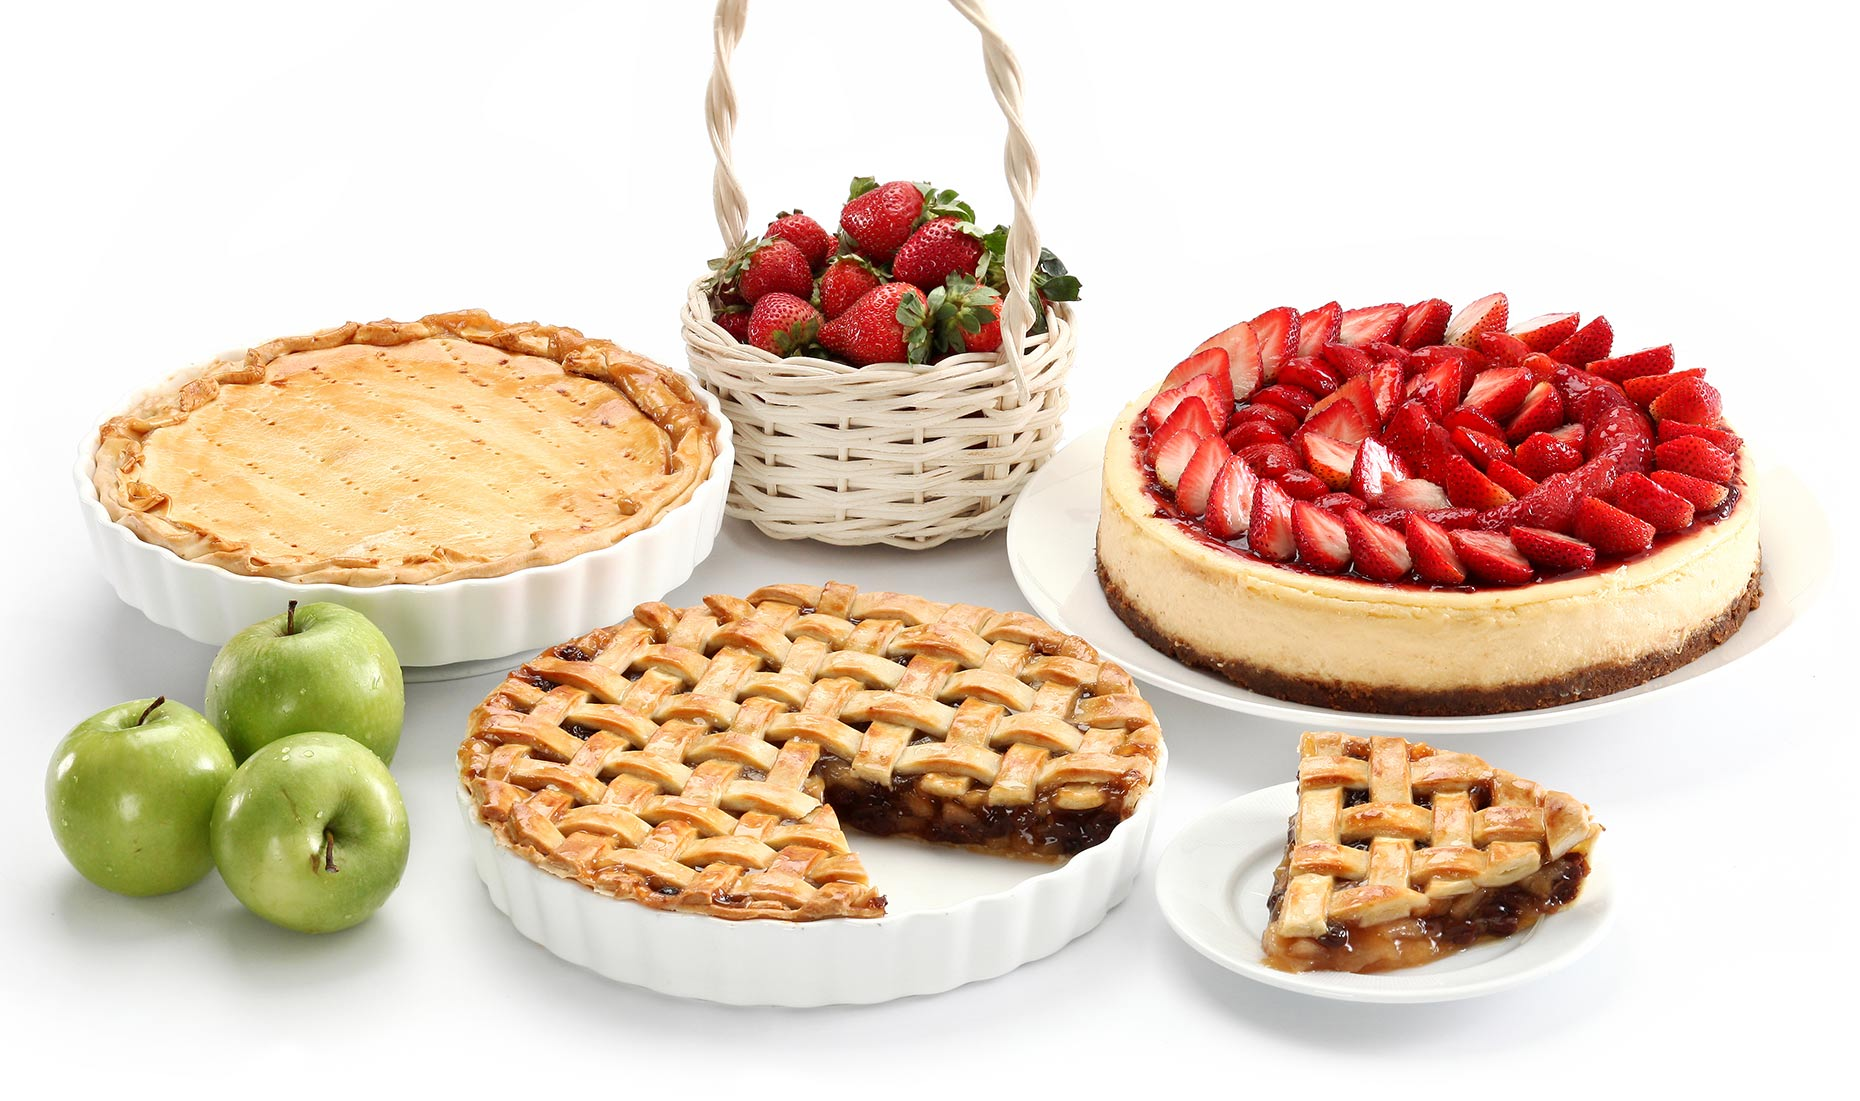 Pies on white background. Food photography and styling for Diamond Hotel , Manila.